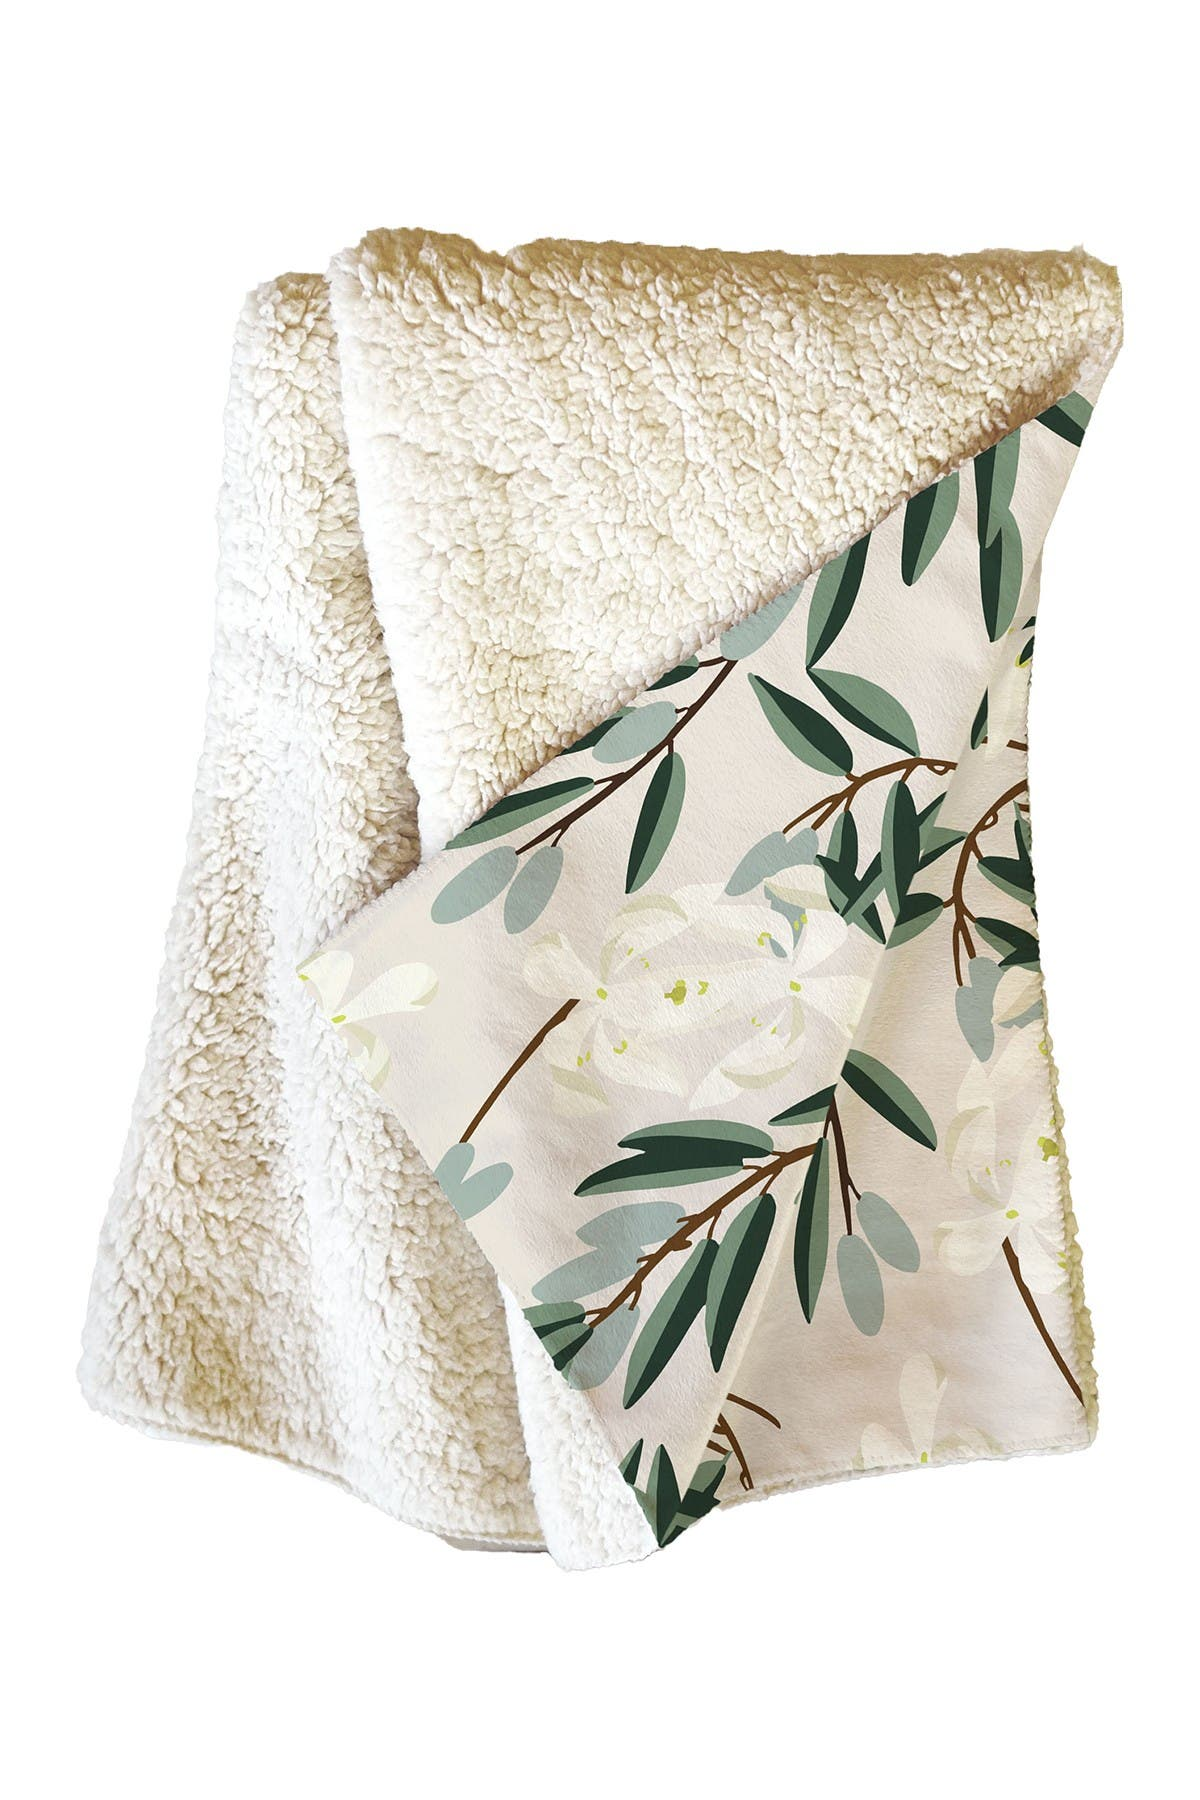 Image of Deny Designs Holli Zollinger Olive Bloom Fleece Throw Blanket